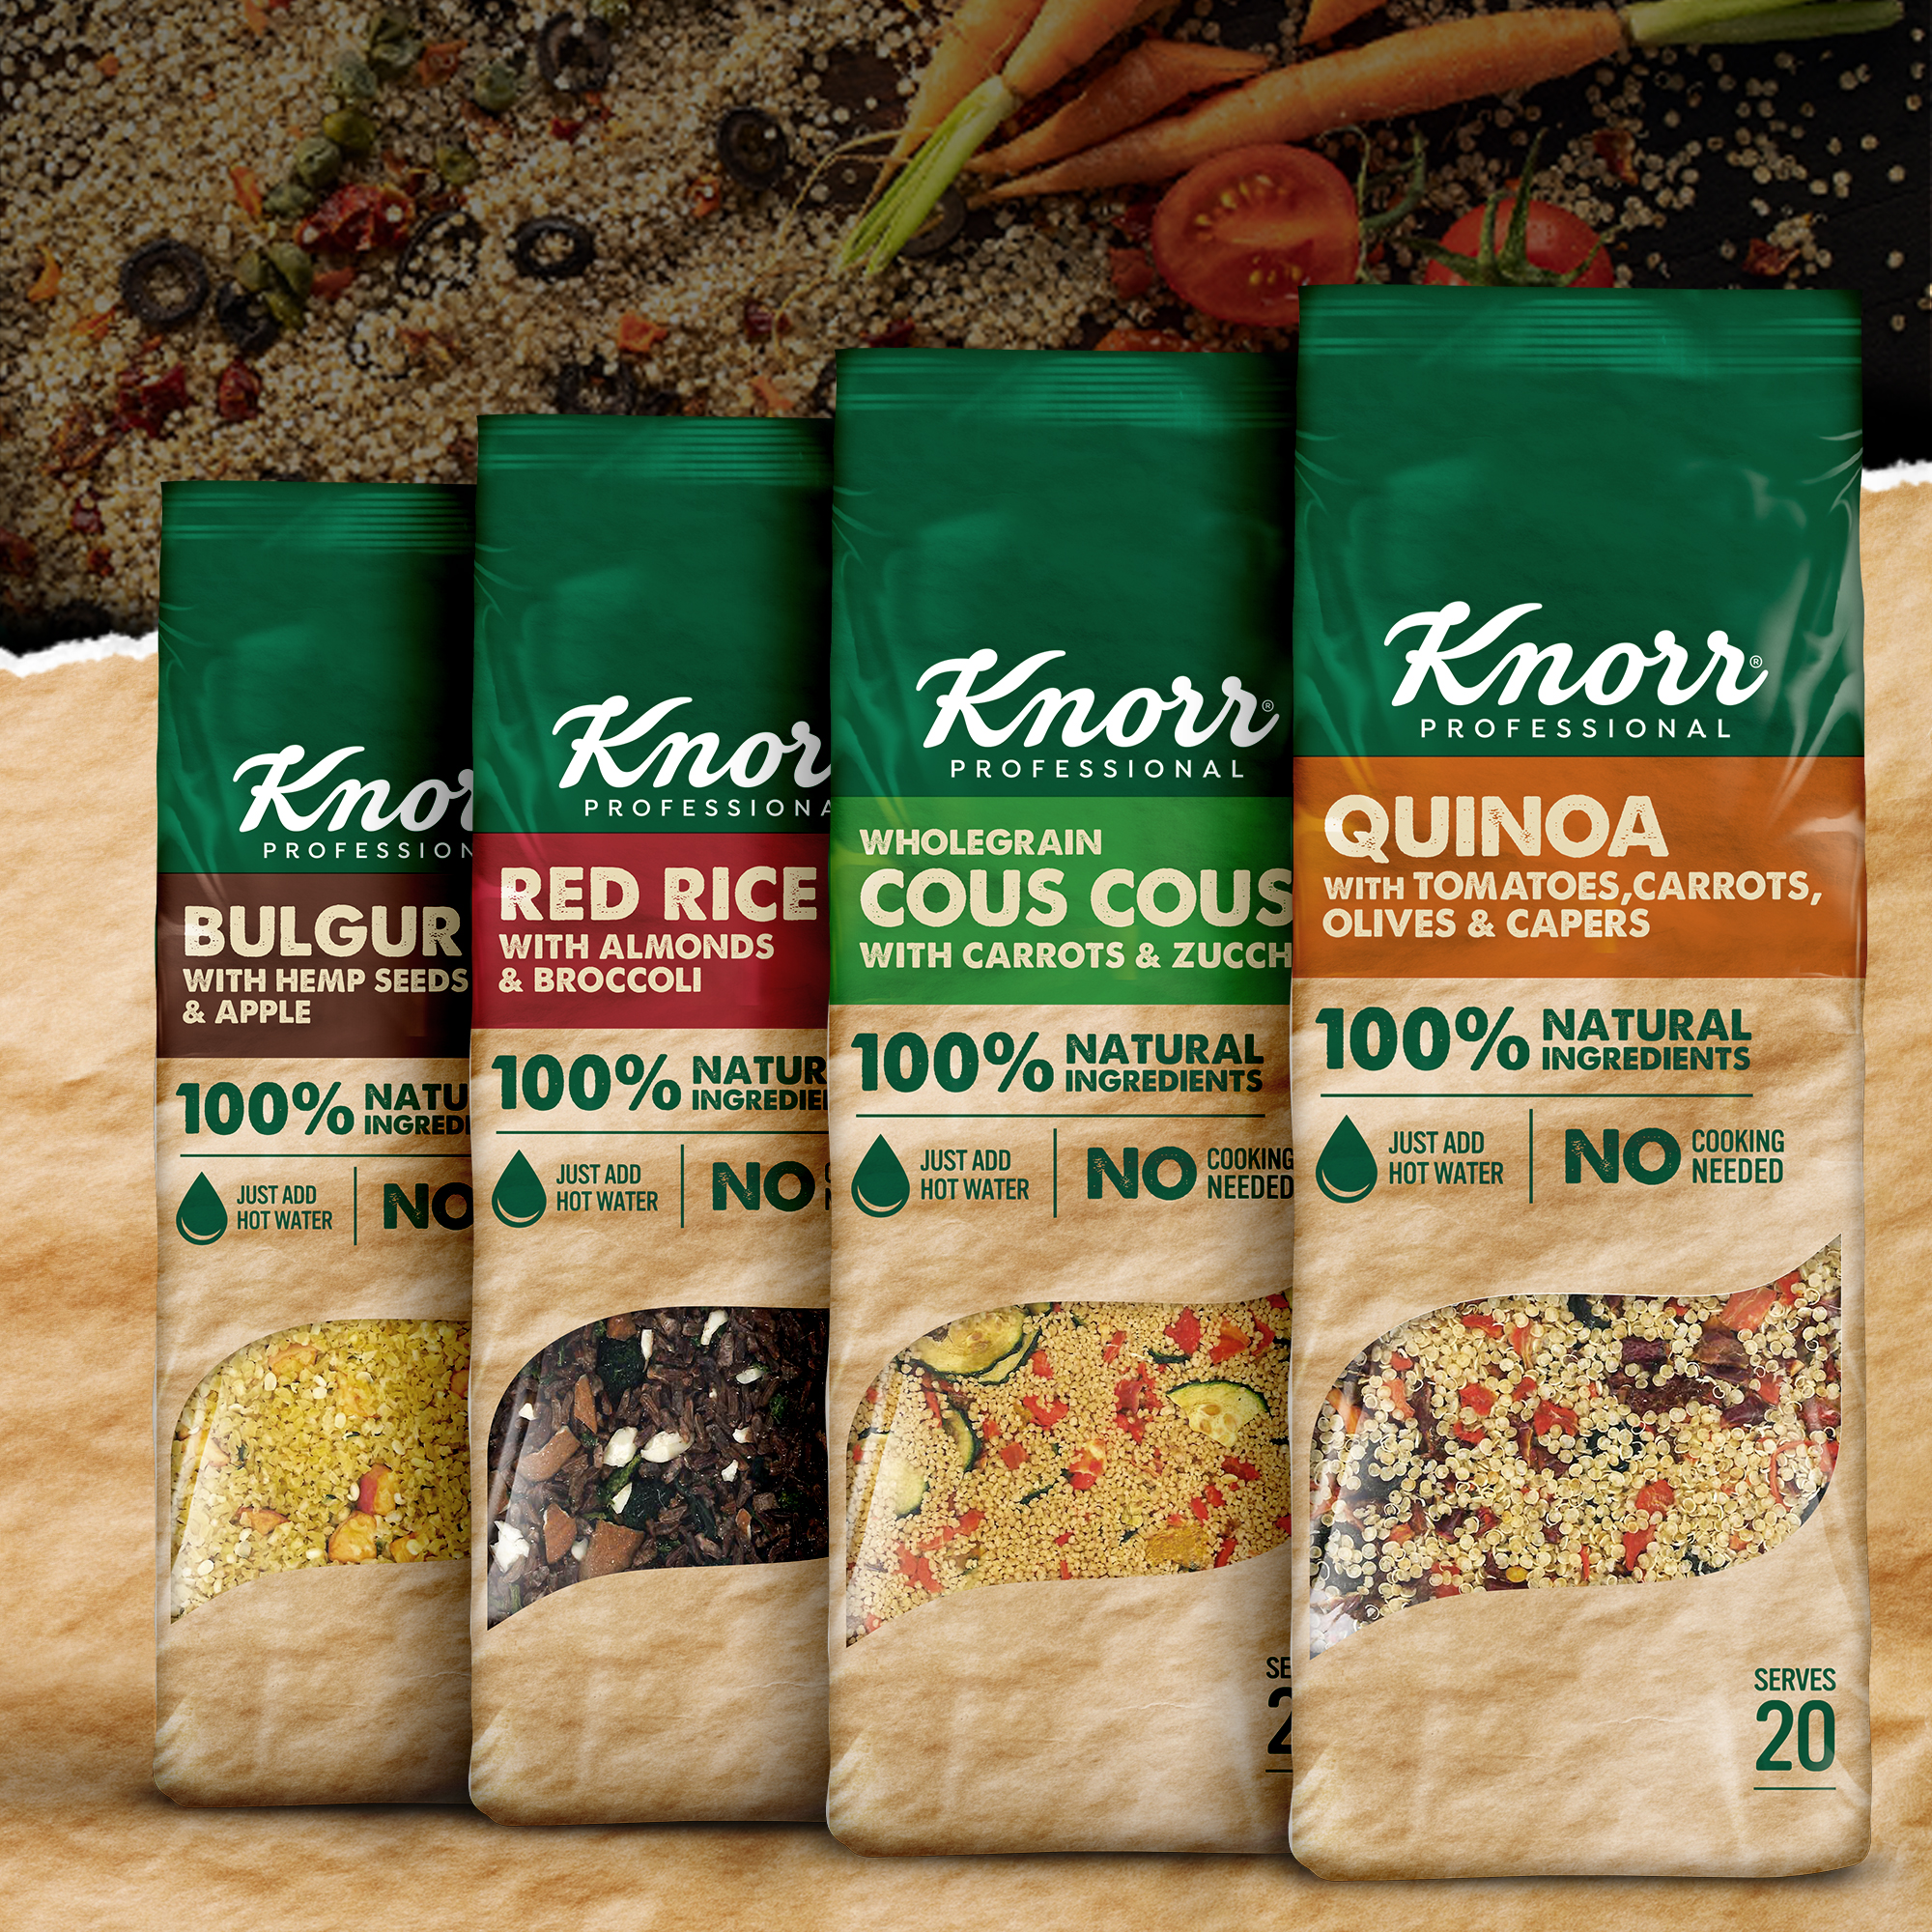 Knorr Professional